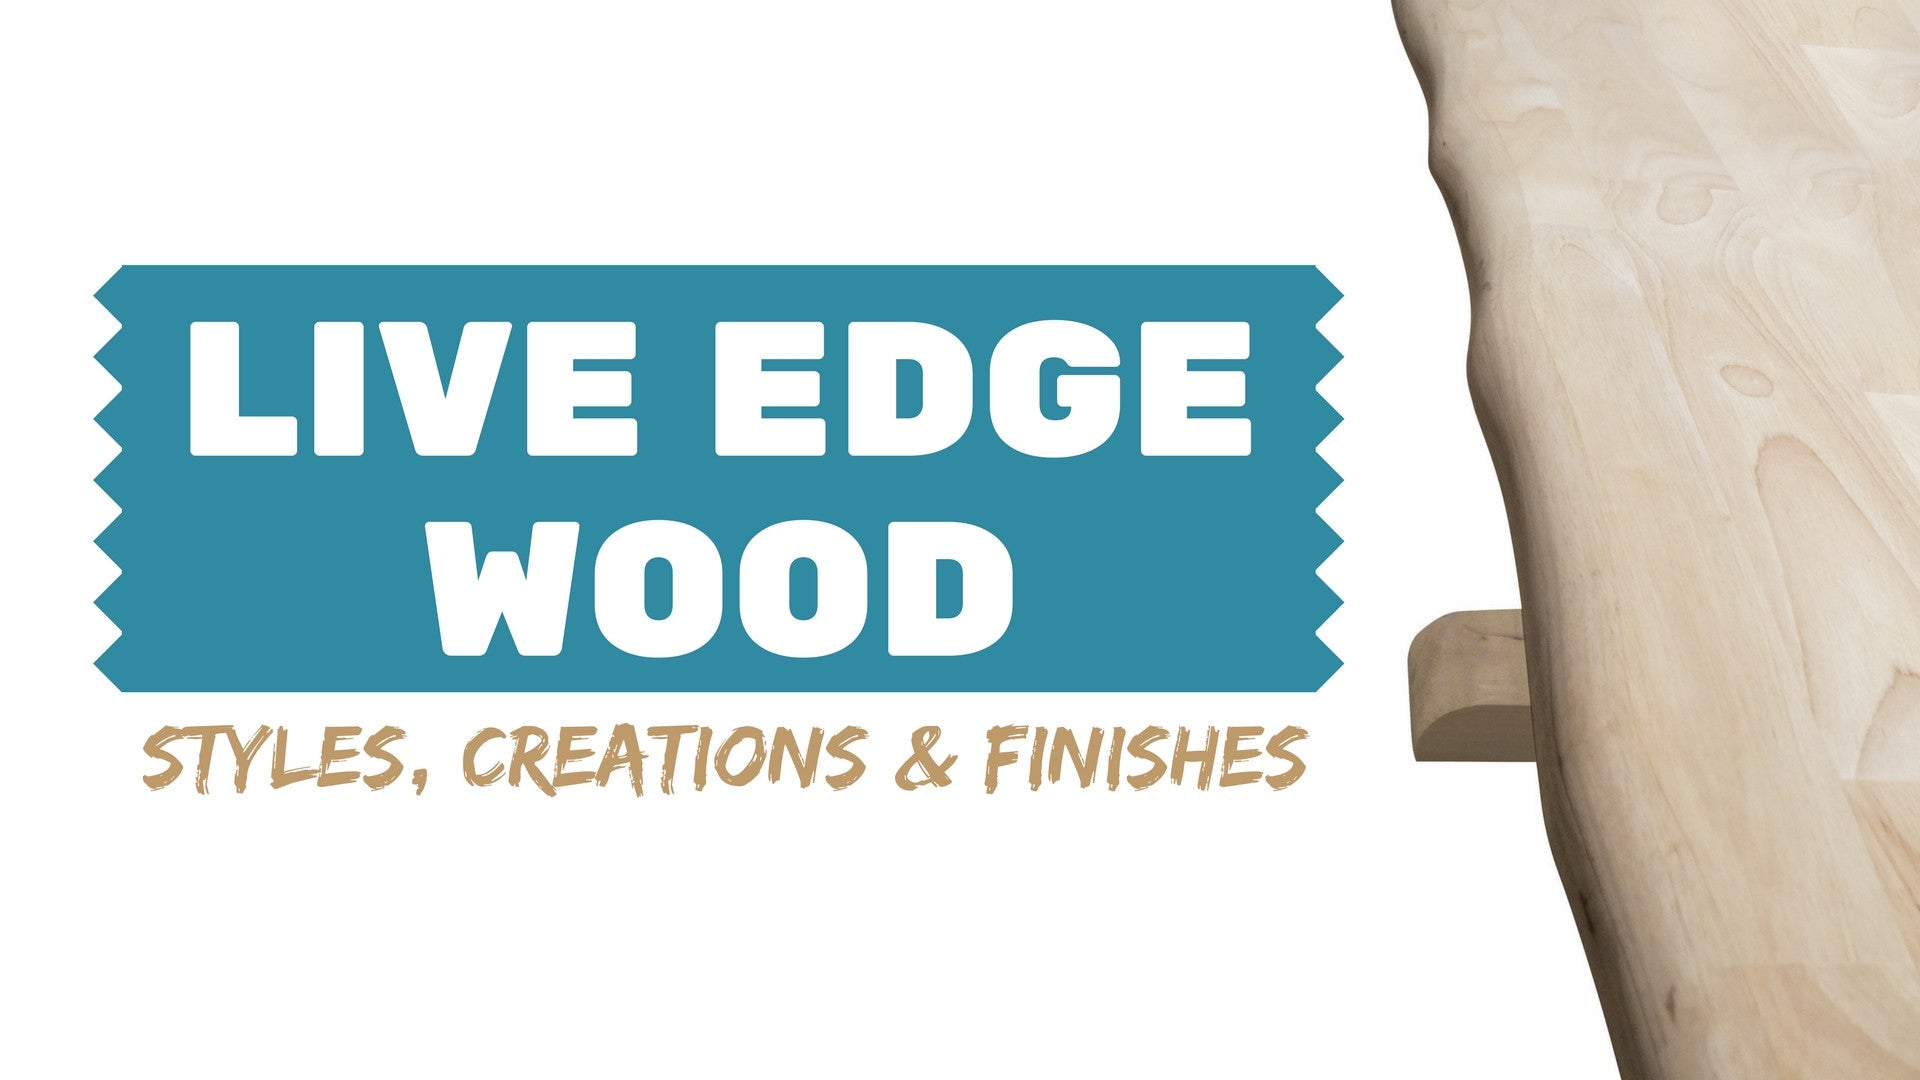 Live Edge Wood Furniture and Techniques